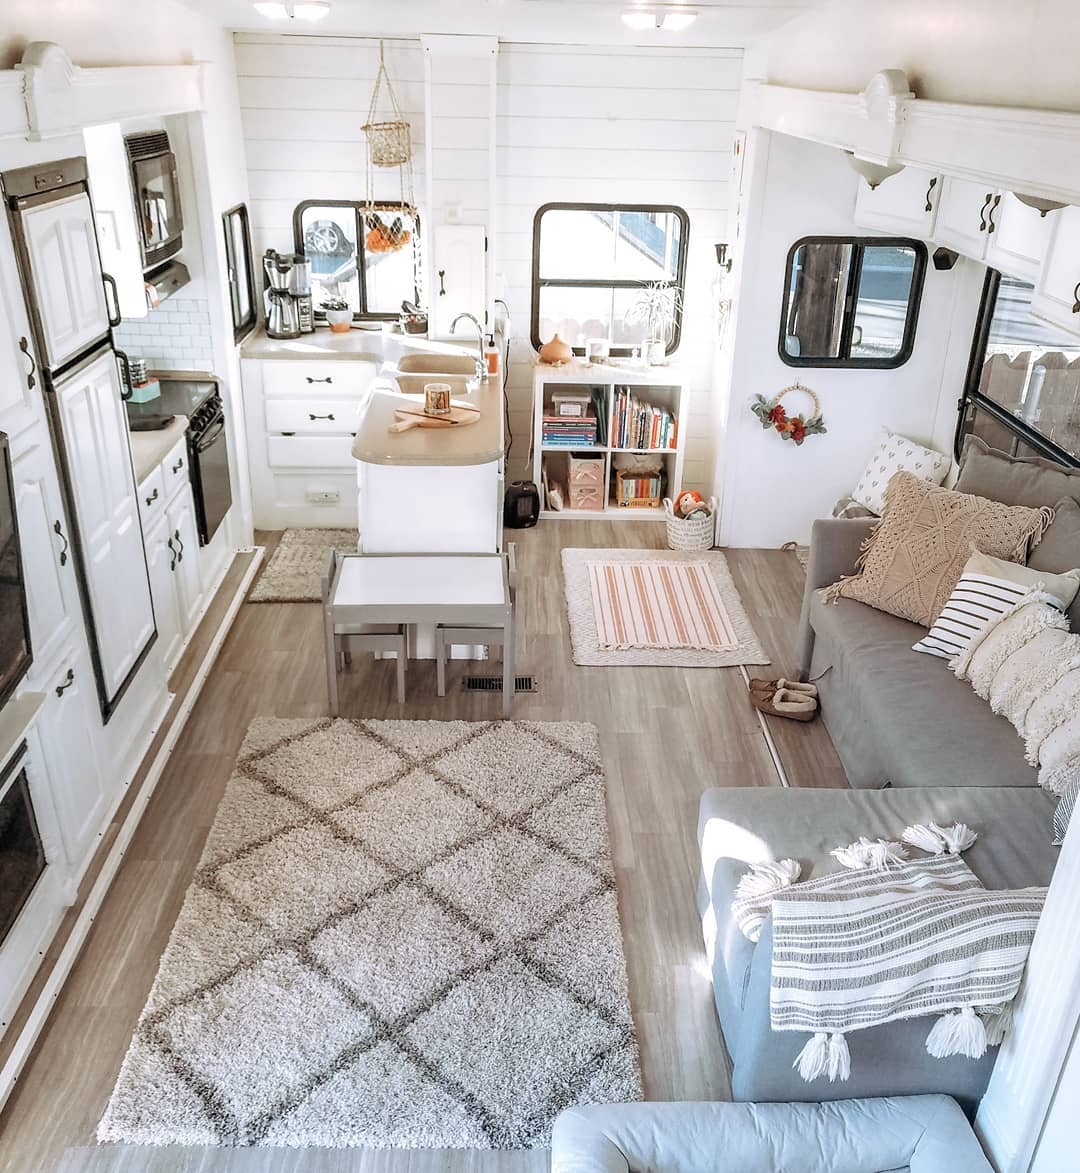 Modern RV remodel – Twinning in our 5thwheel feature